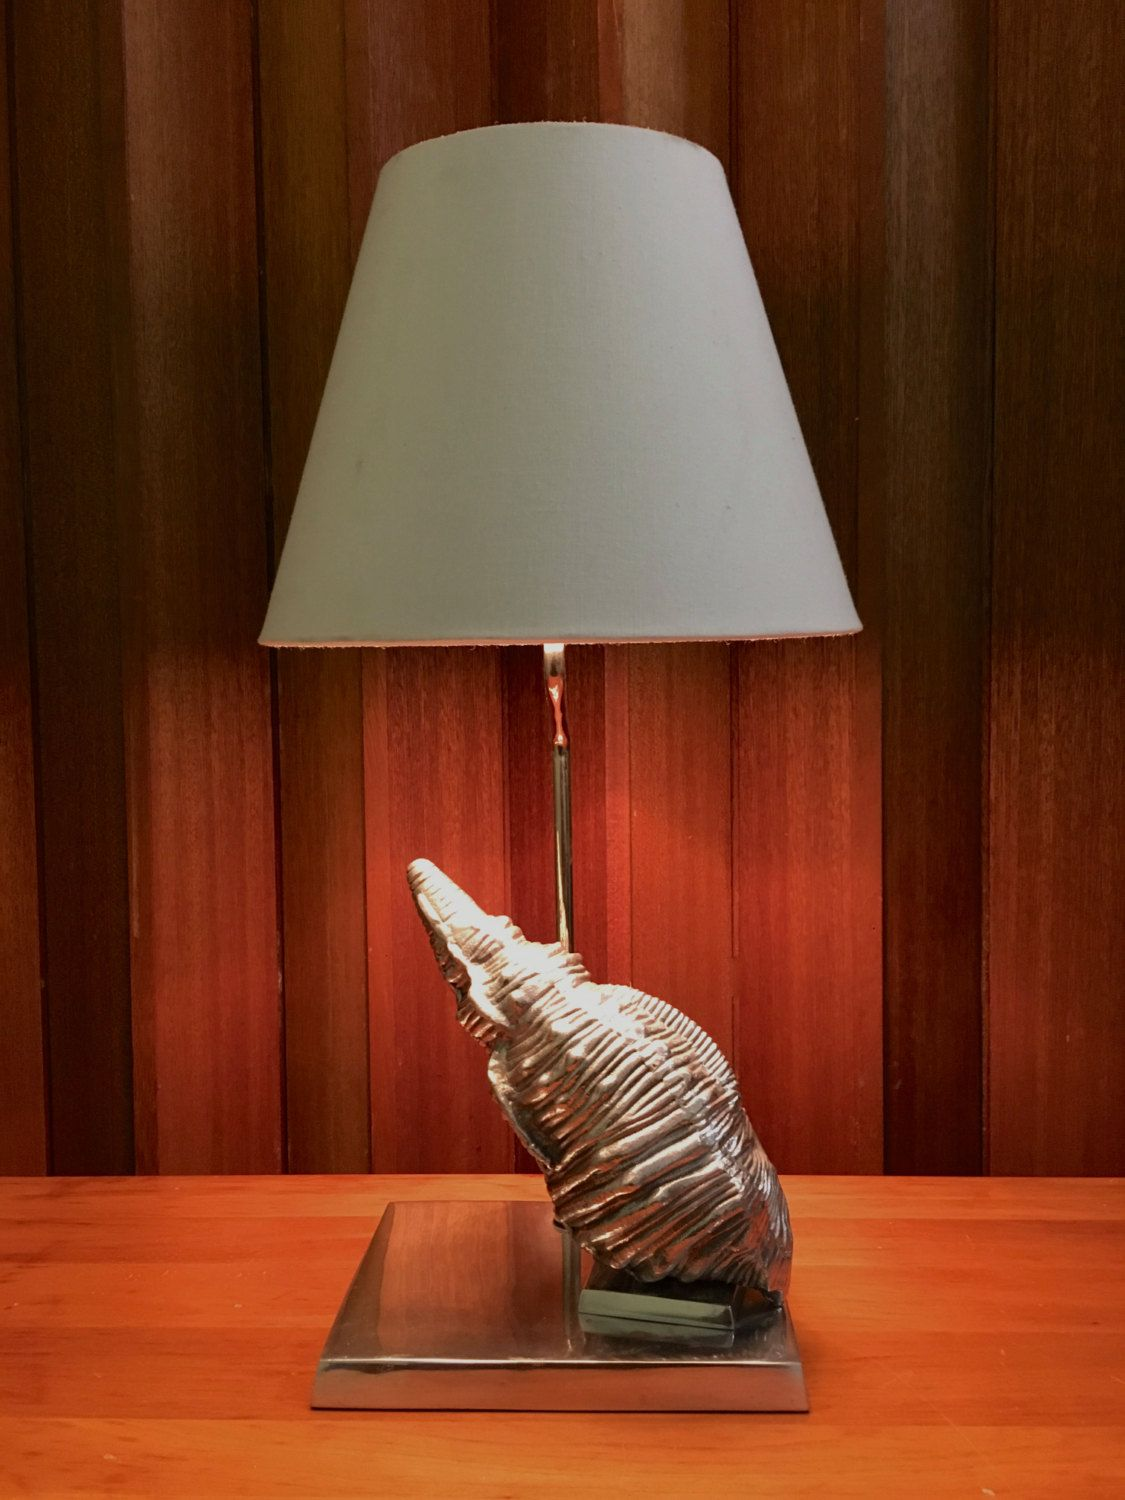 Vintage fredrick cooper table lamp silver seashell conch shell vintage fredrick cooper table lamp silver seashell conch shell modern beach decor by offcentermodern on etsy aloadofball Gallery